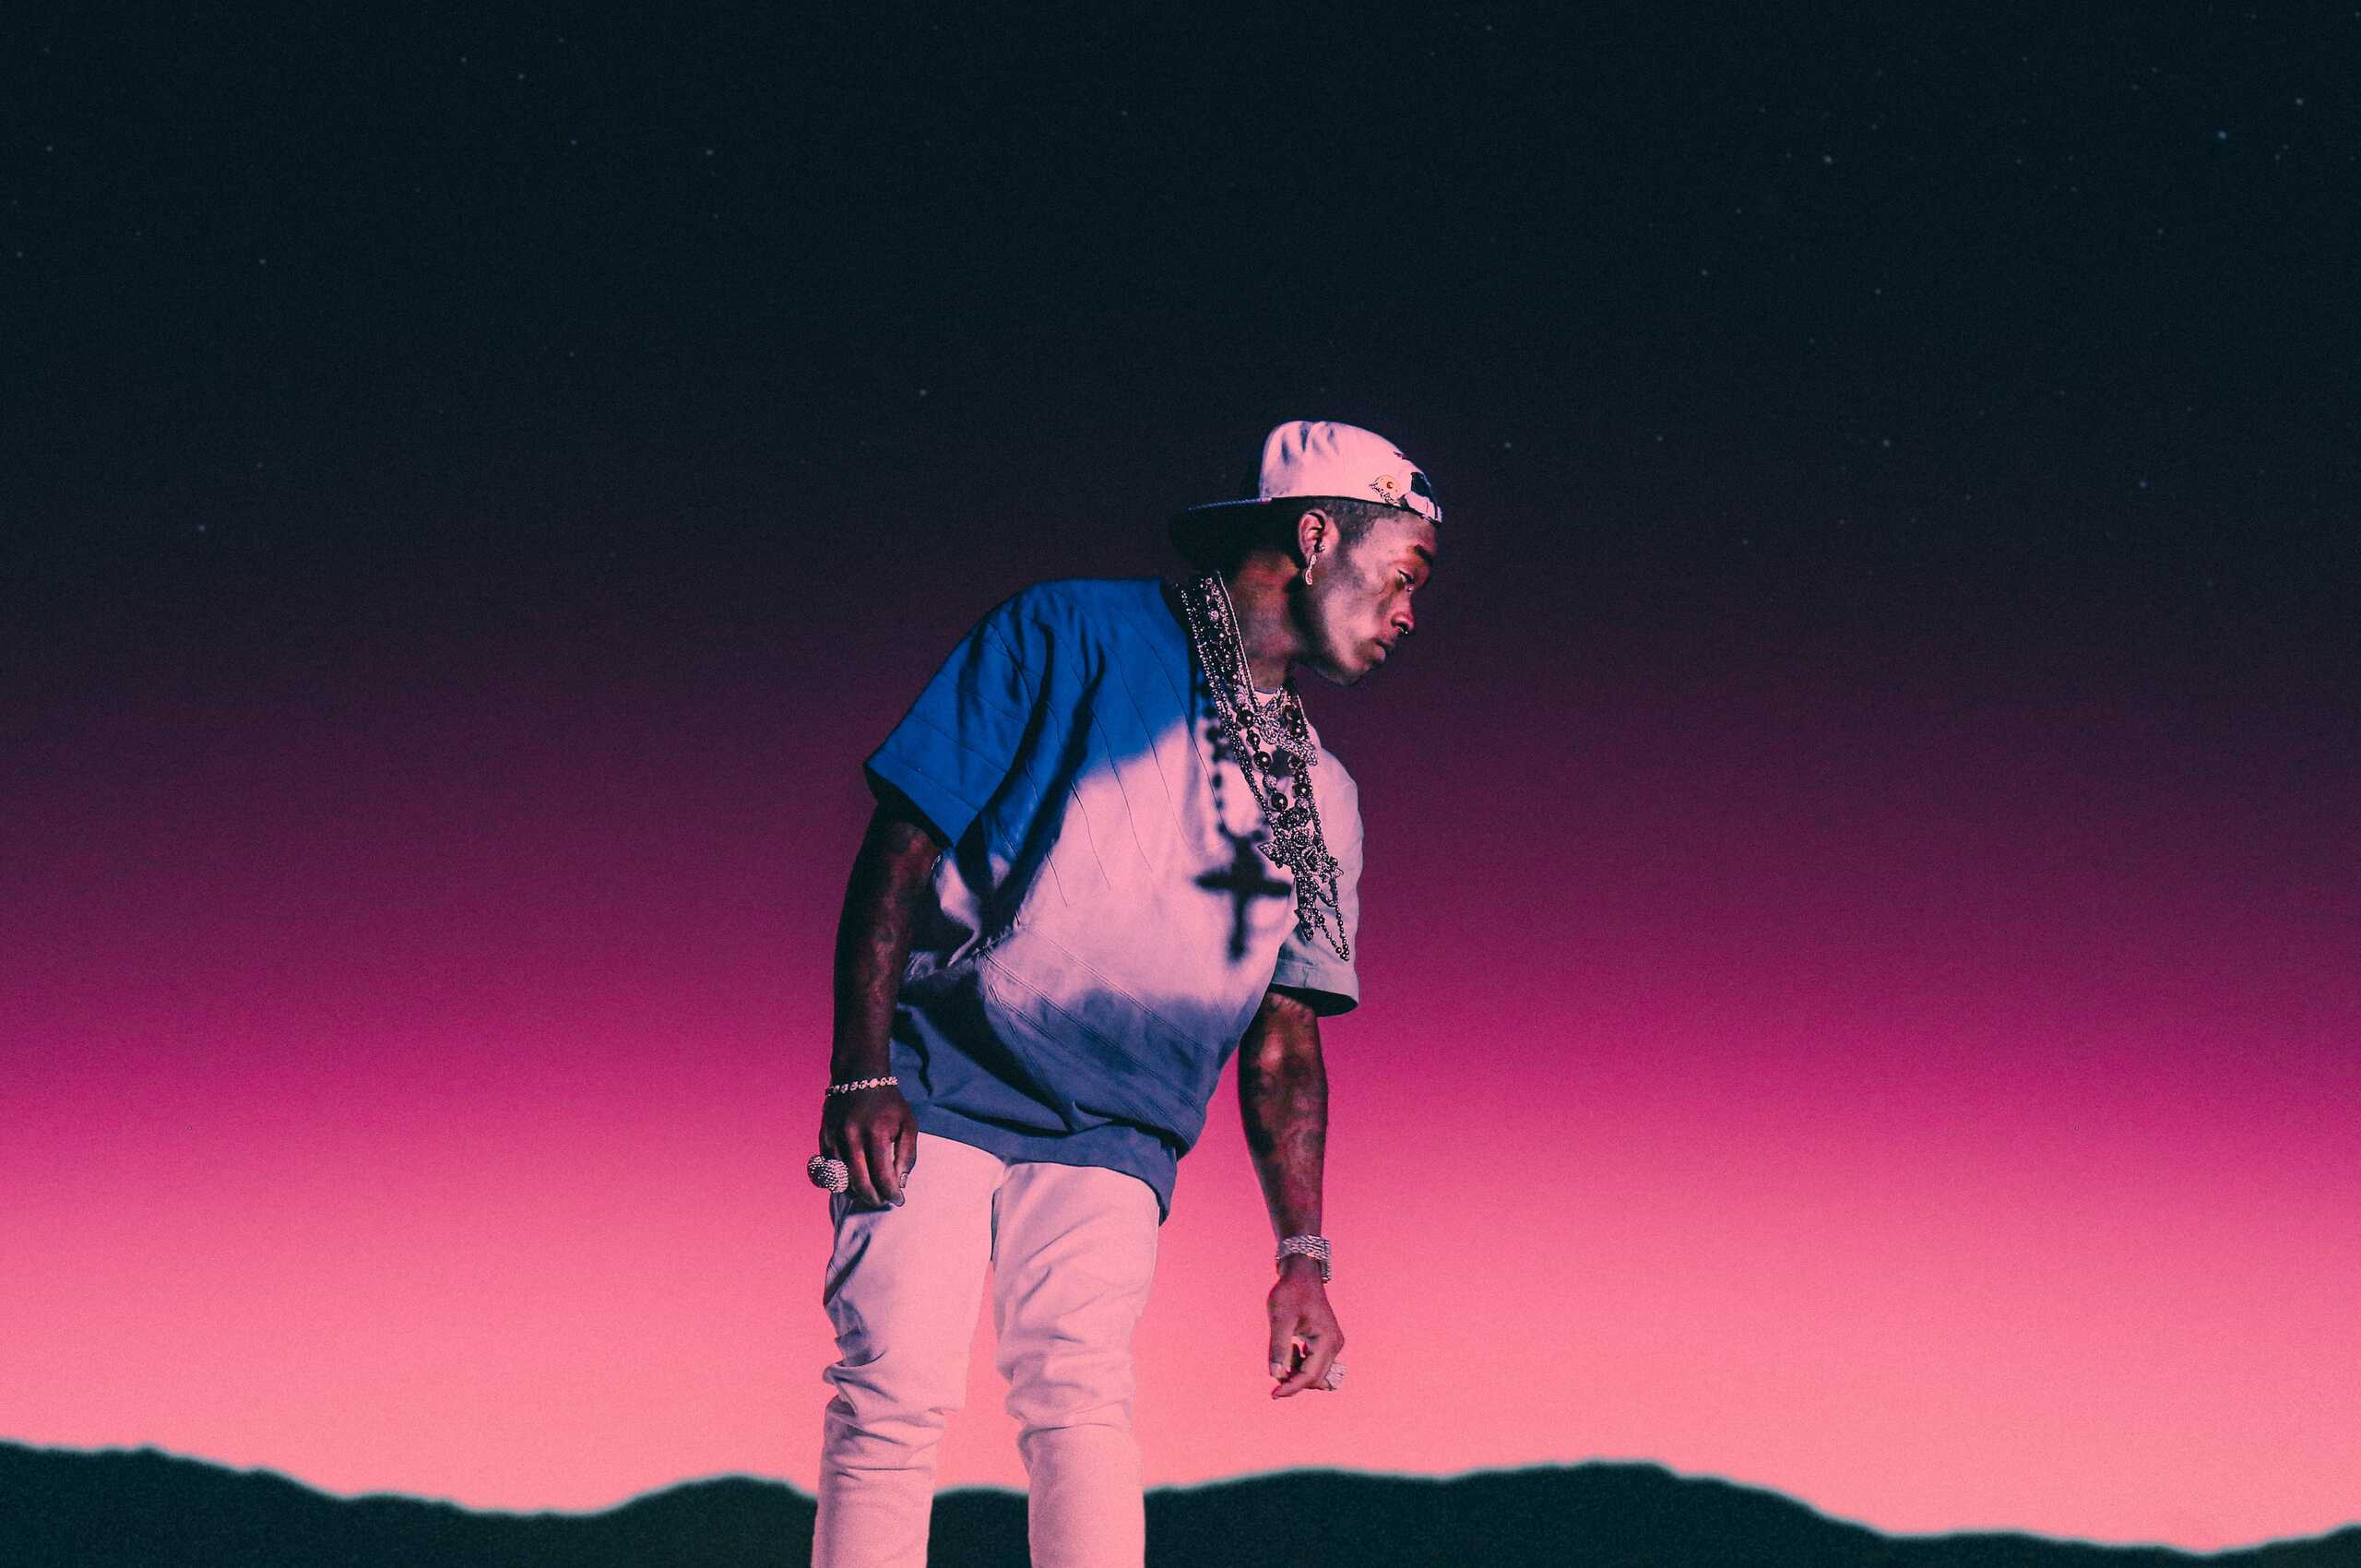 2560x1700 Lil Uzi Vert 5k 2020 Chromebook Pixel Hd 4k Wallpapers Images Backgrounds Photos And Pictures Lil uzi vert s hd with a maximum resolution of 2560x1440 and related vert or wallpapers wallpapers. hdqwalls com